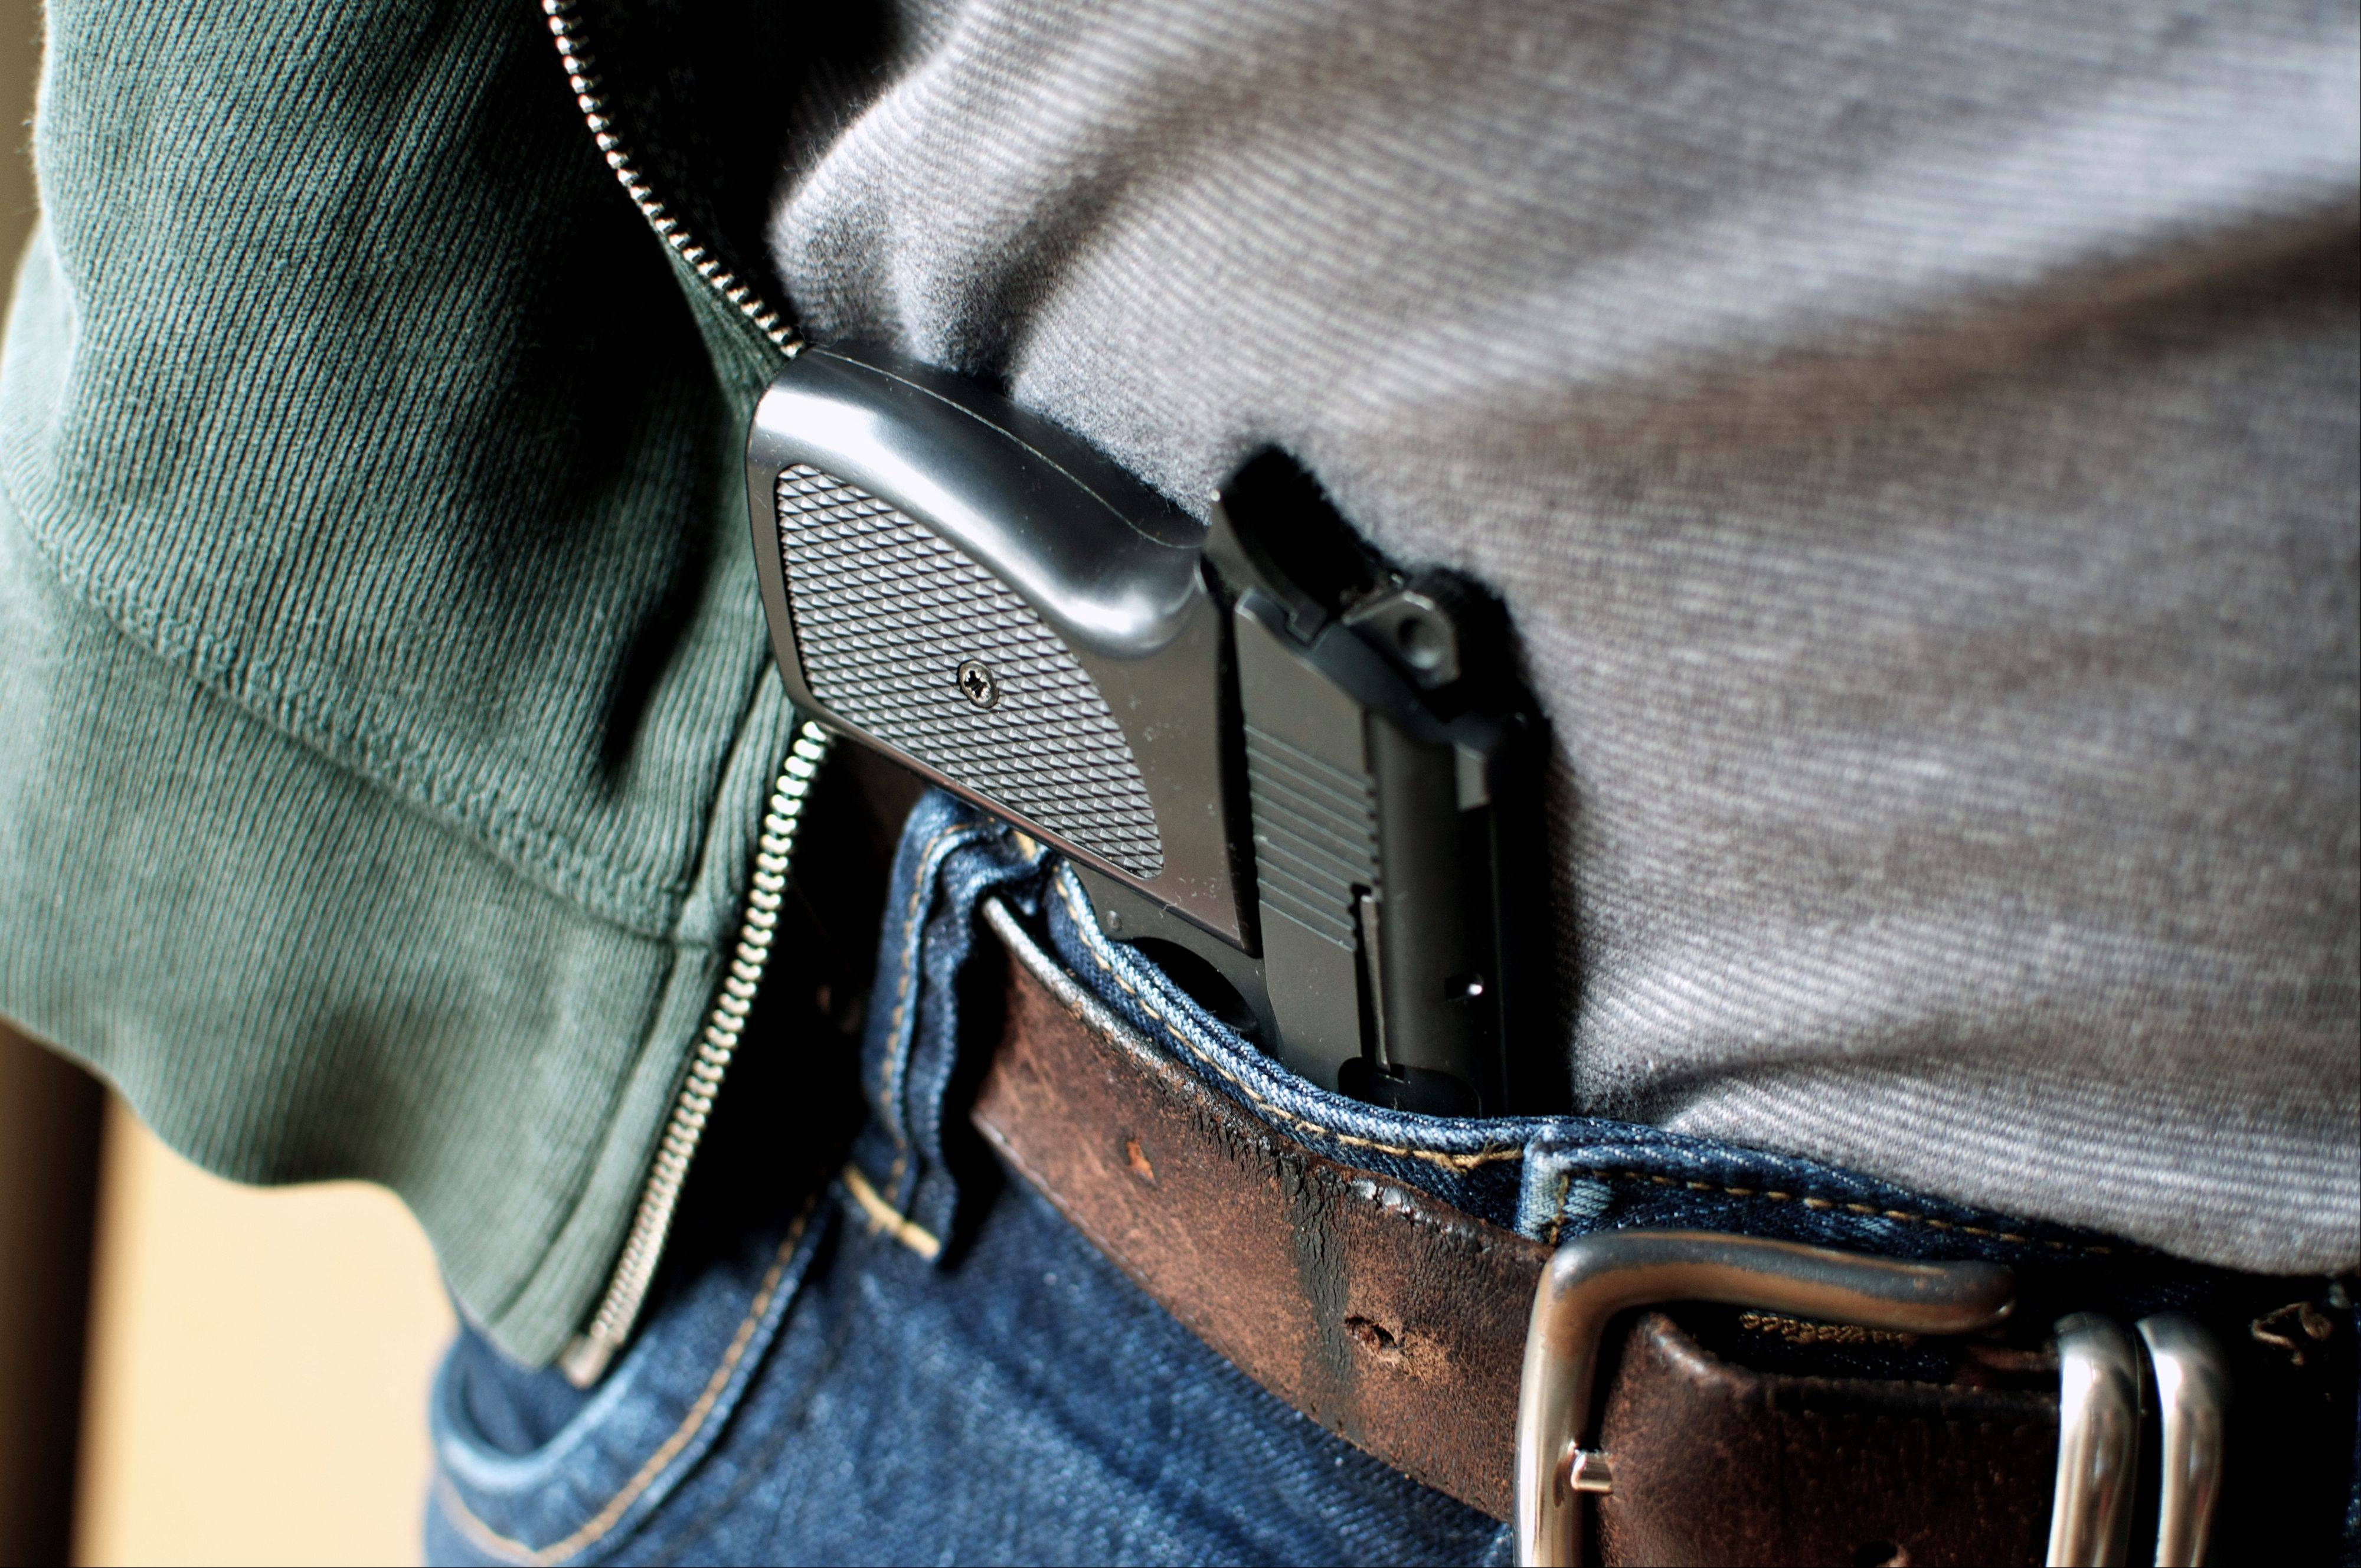 A new concealed carry law that awaits Gov. Pat Quinn's signature has a variety of restrictions.